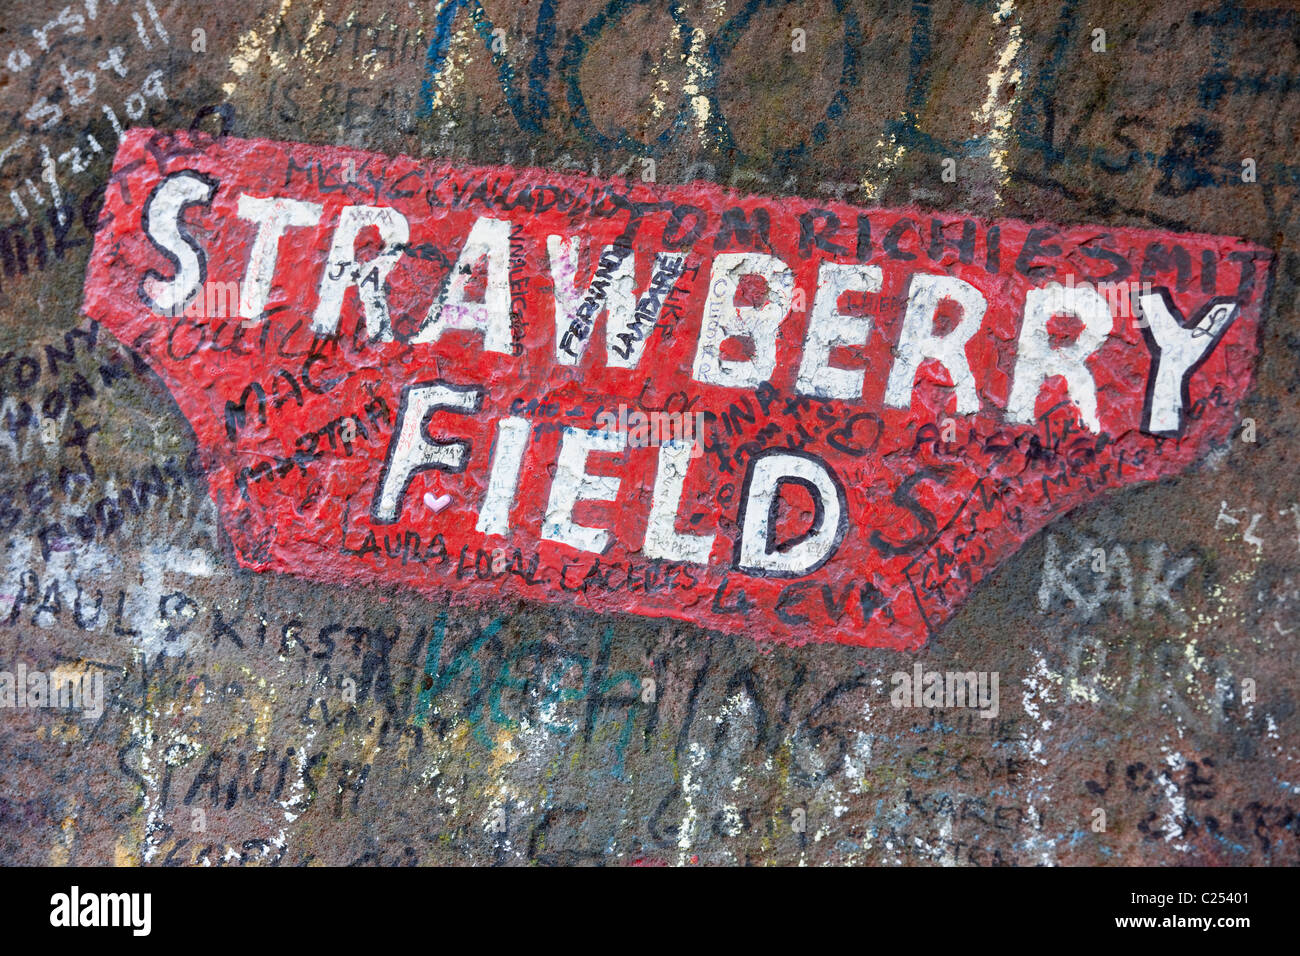 The gateway to Strawberry Field, the subject of a Beatles song, Liverpool - Stock Image